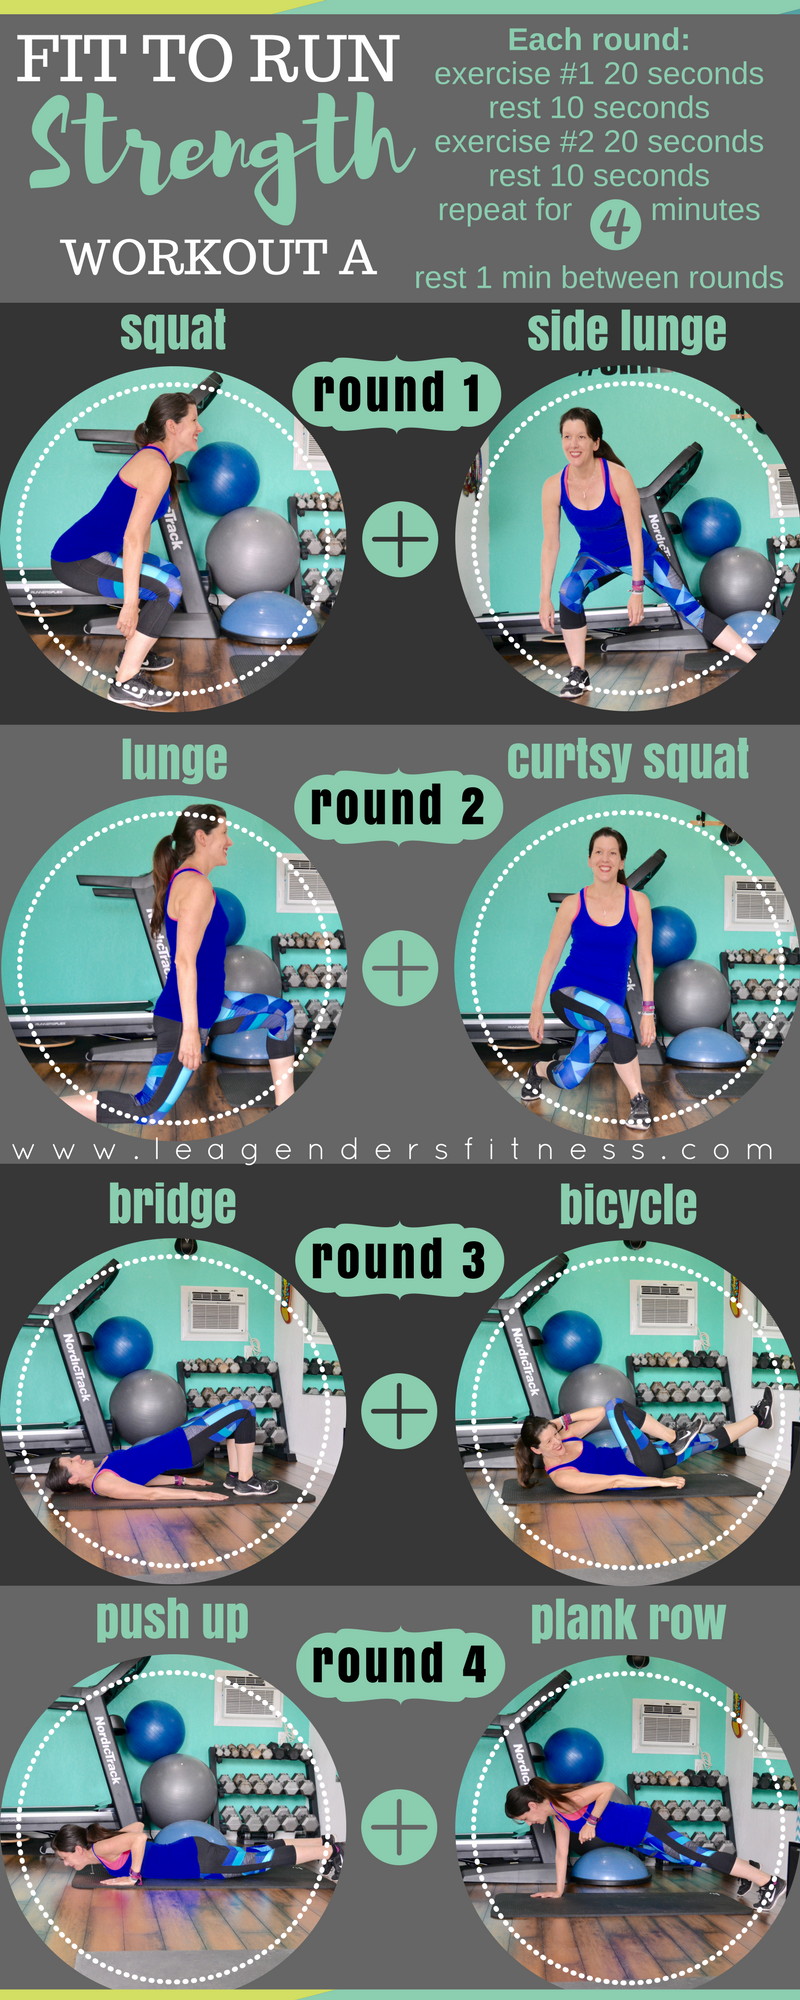 strength training for runners. Save to your favorite Pinterest workout board for later.